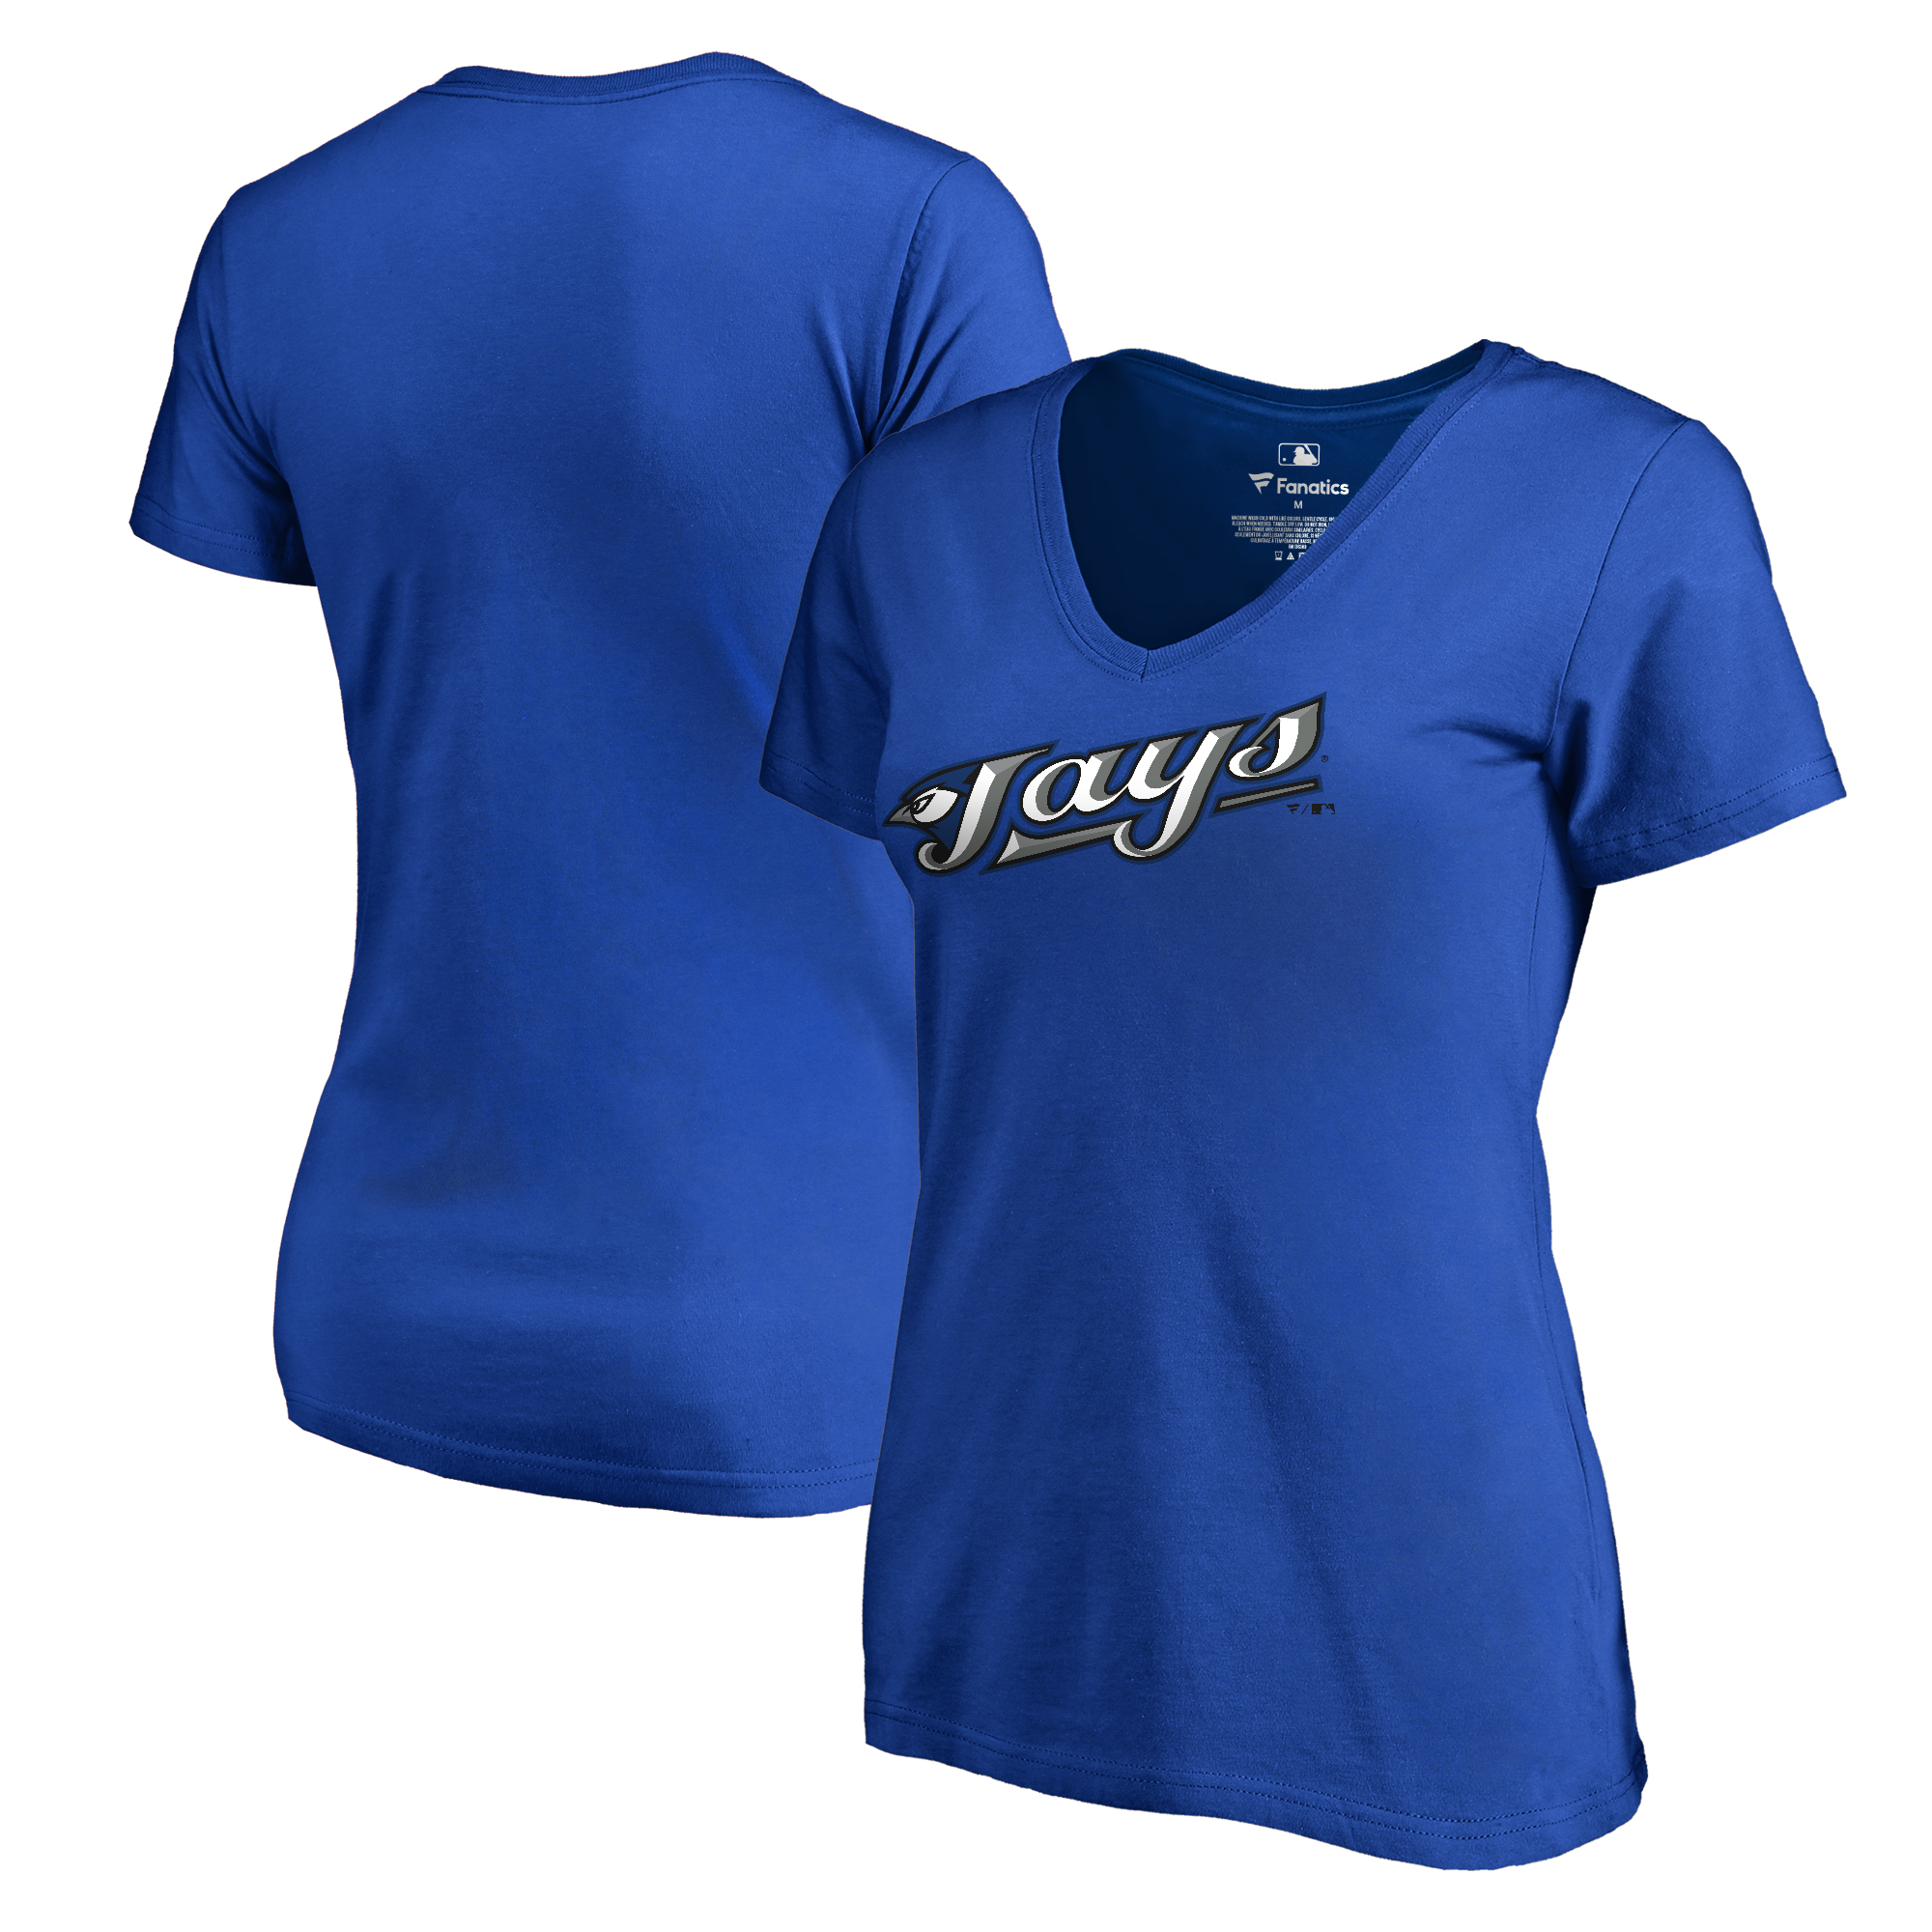 Toronto Blue Jays Fanatics Branded Women's Cooperstown Collection Wahconah T-Shirt - Royal